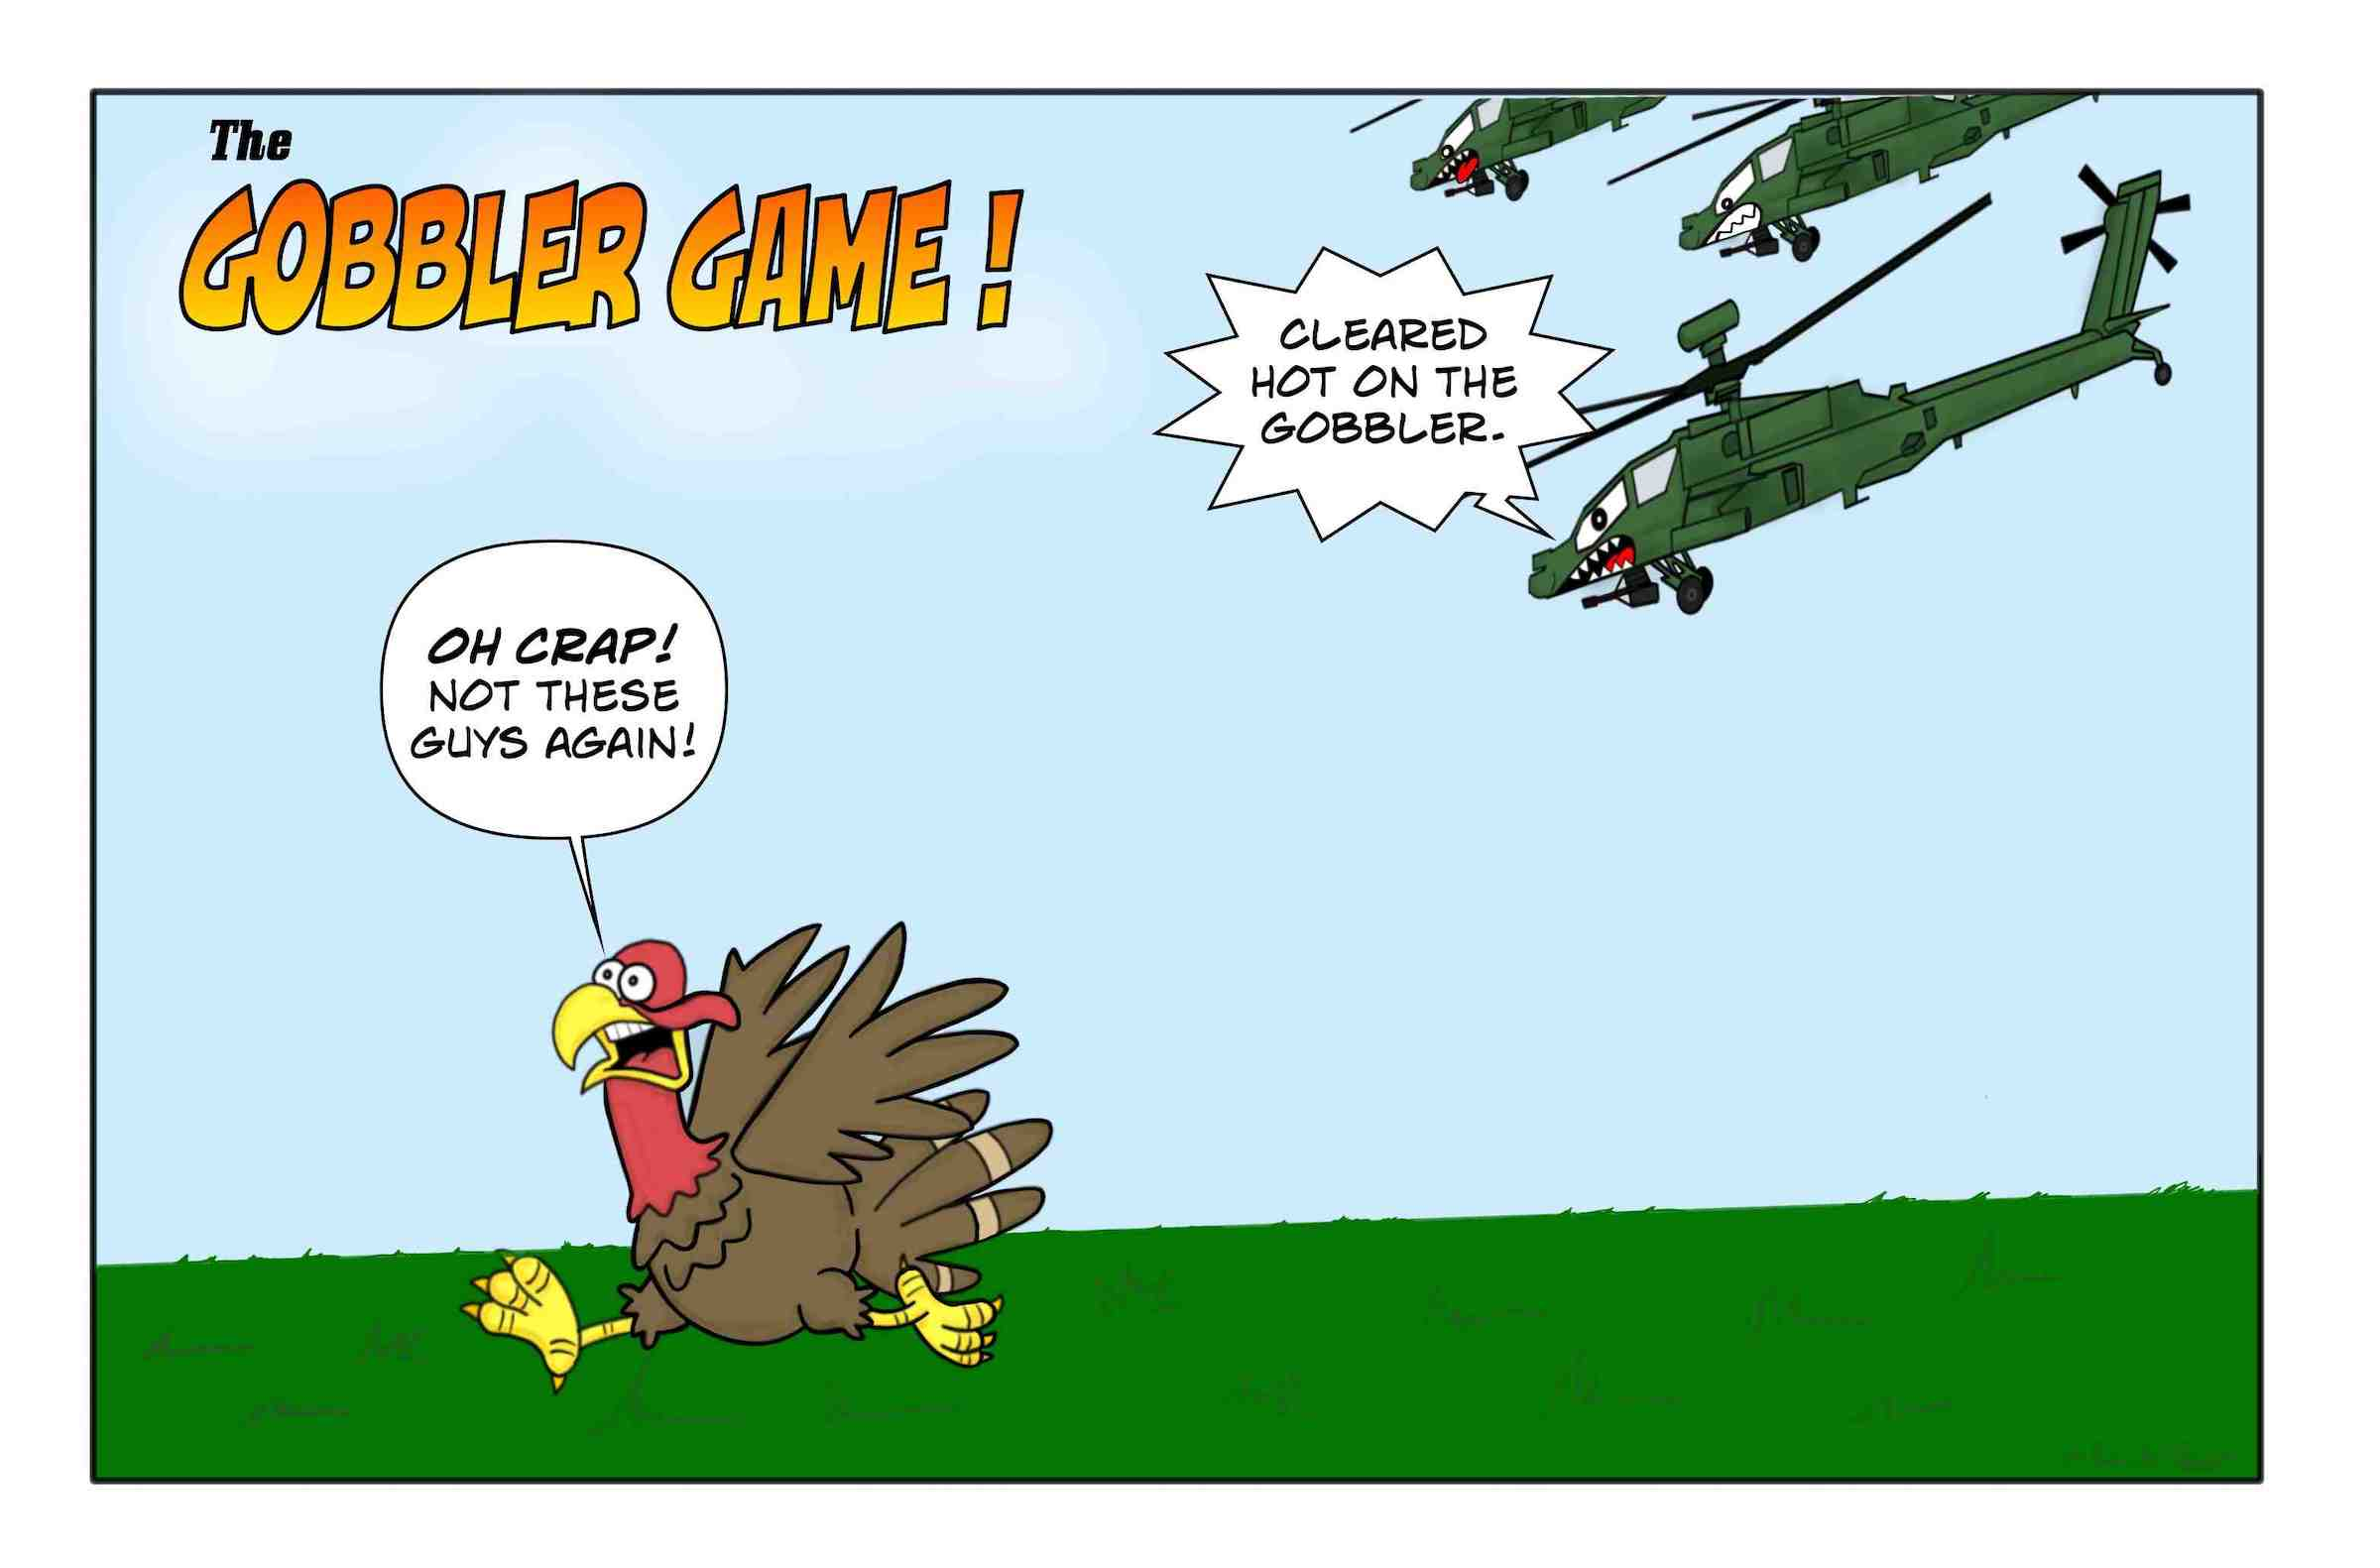 Army Apache helicopters chase after a turkey on Thanksgiving.